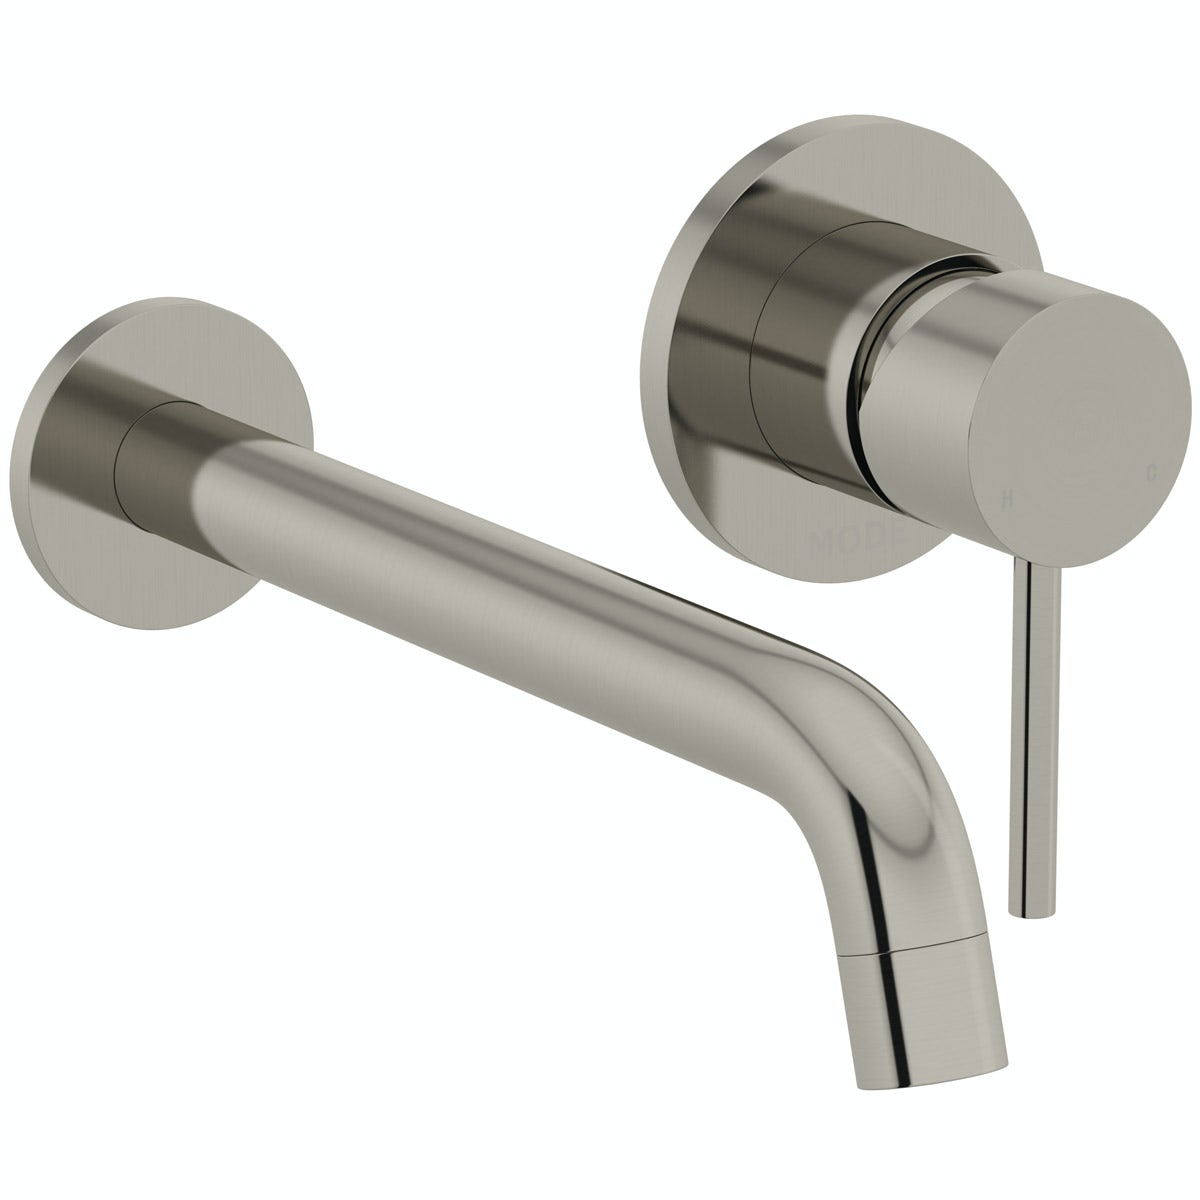 Mode Spencer round wall mounted brushed nickel basin mixer tap